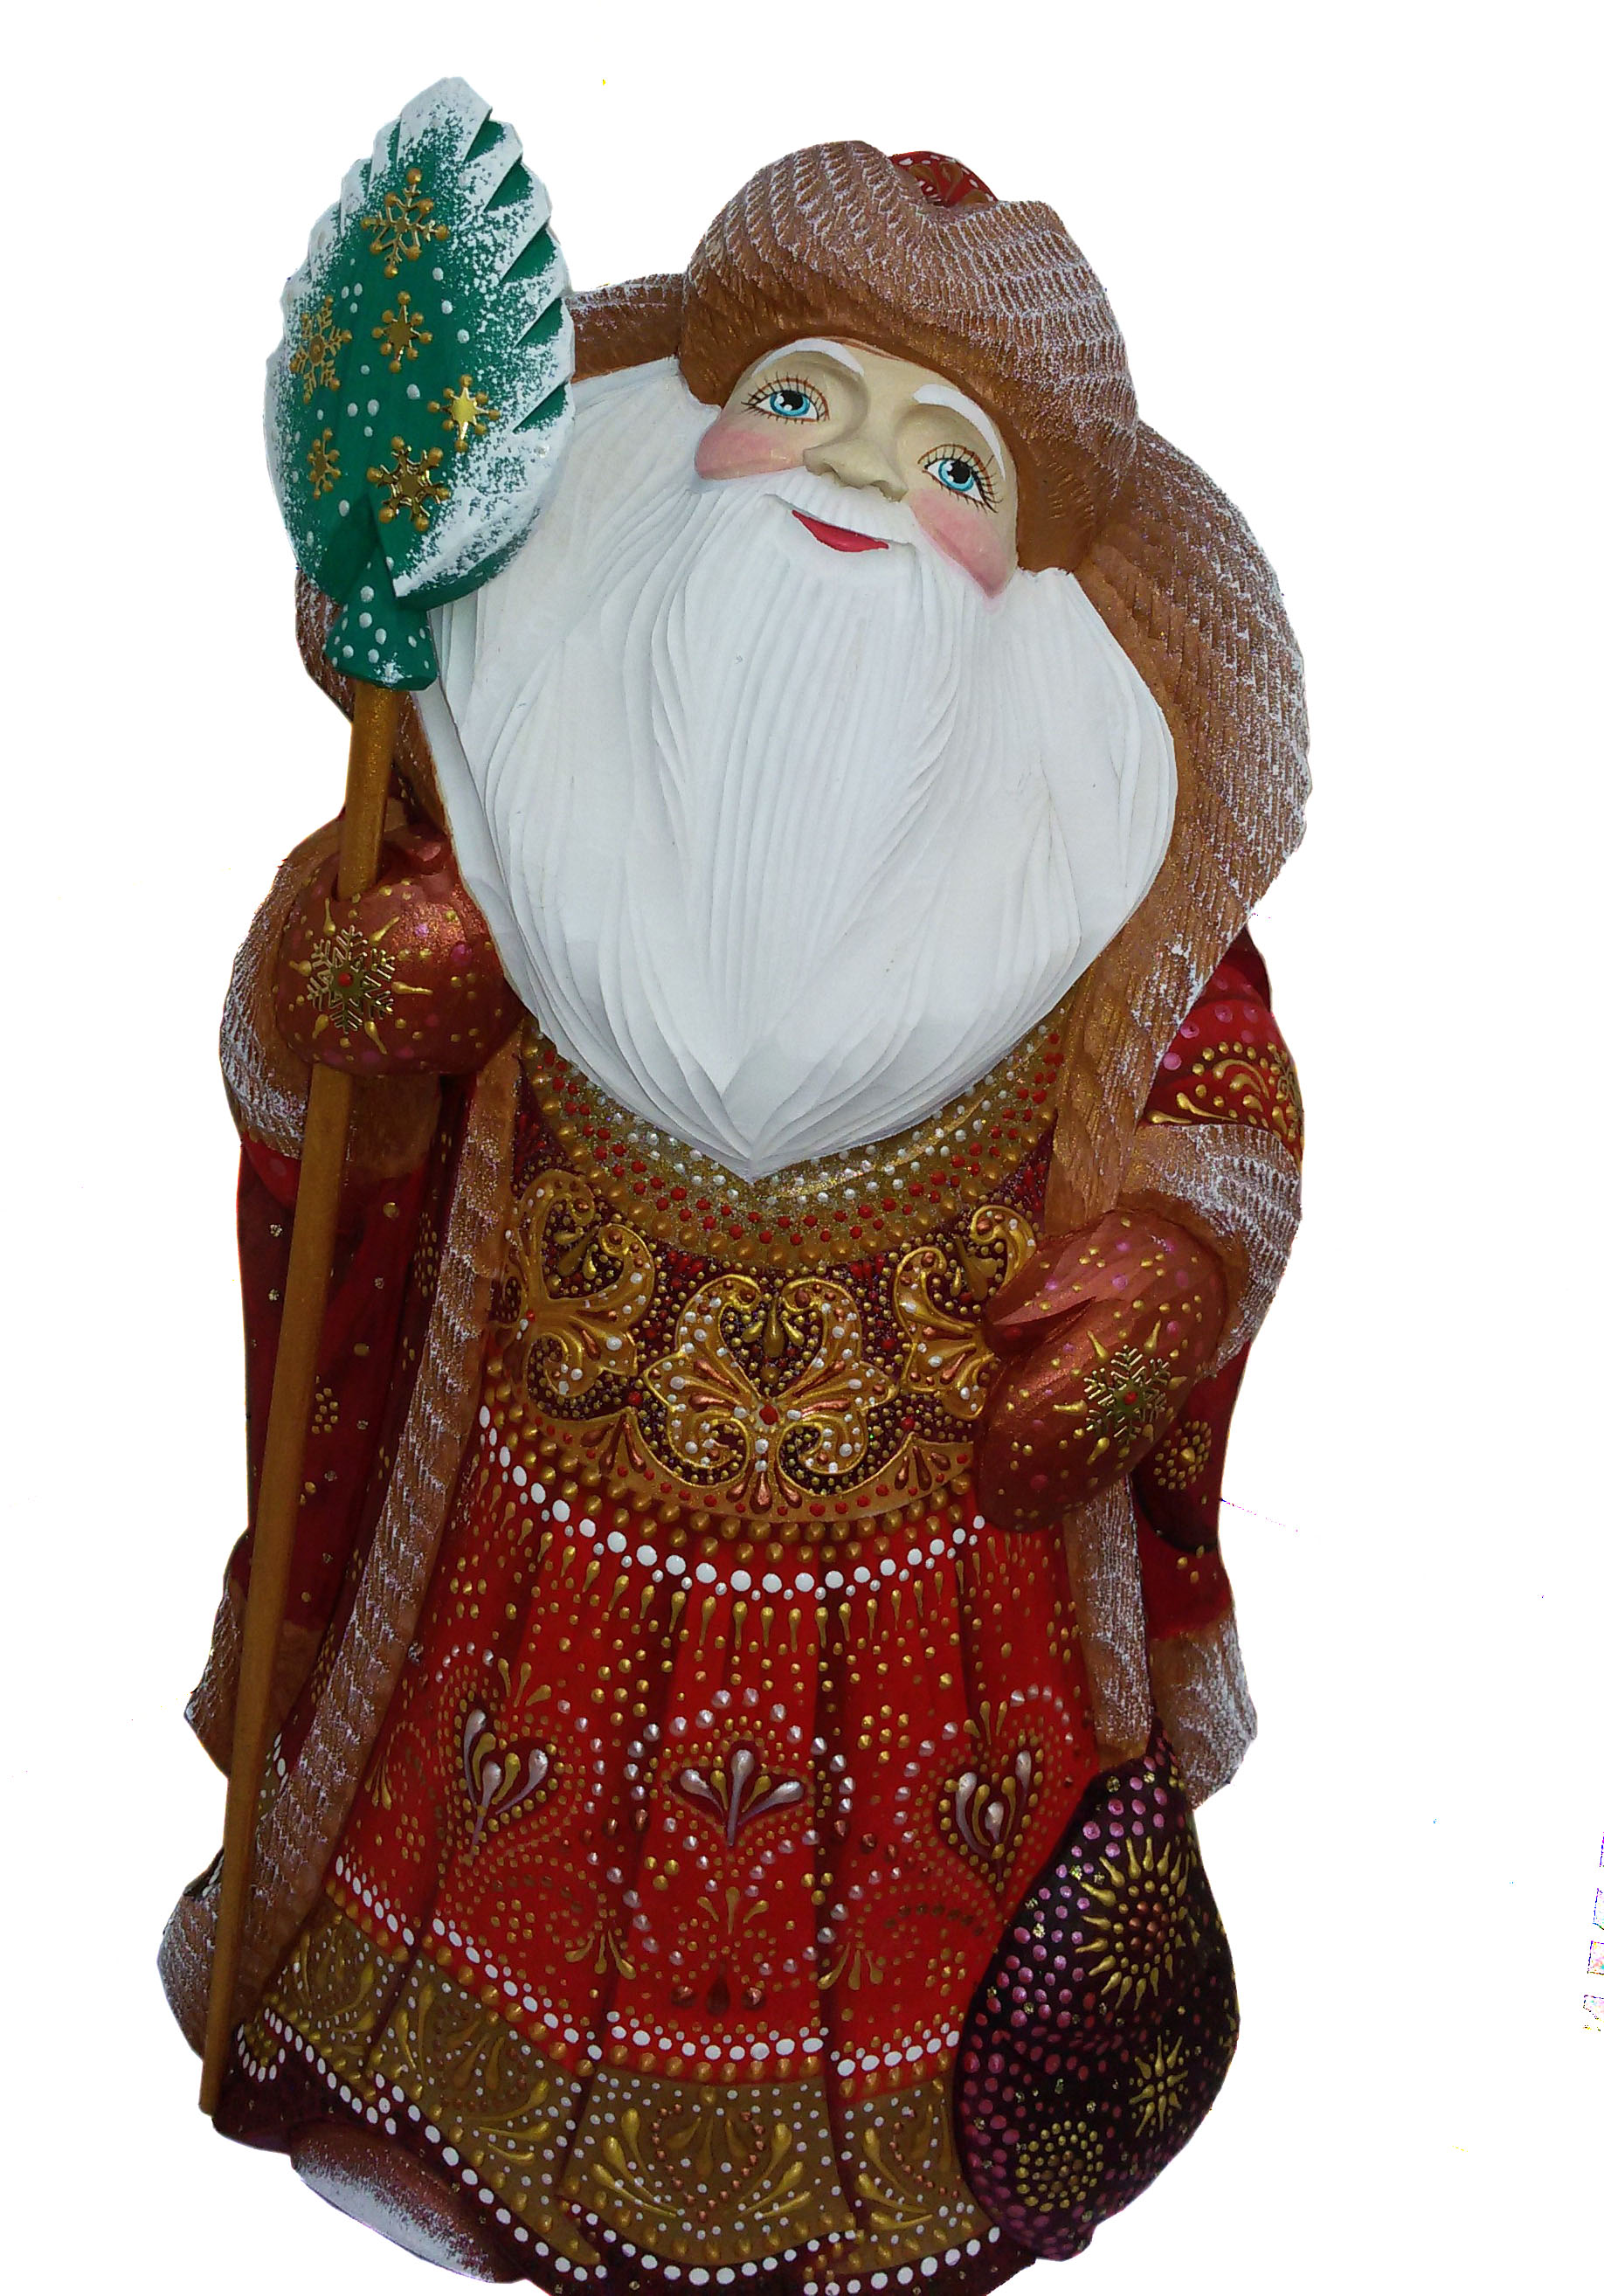 CK_ish70001 Traditionally hand carved of wood from linden tree and hand painted Santa Claus (34 cm)